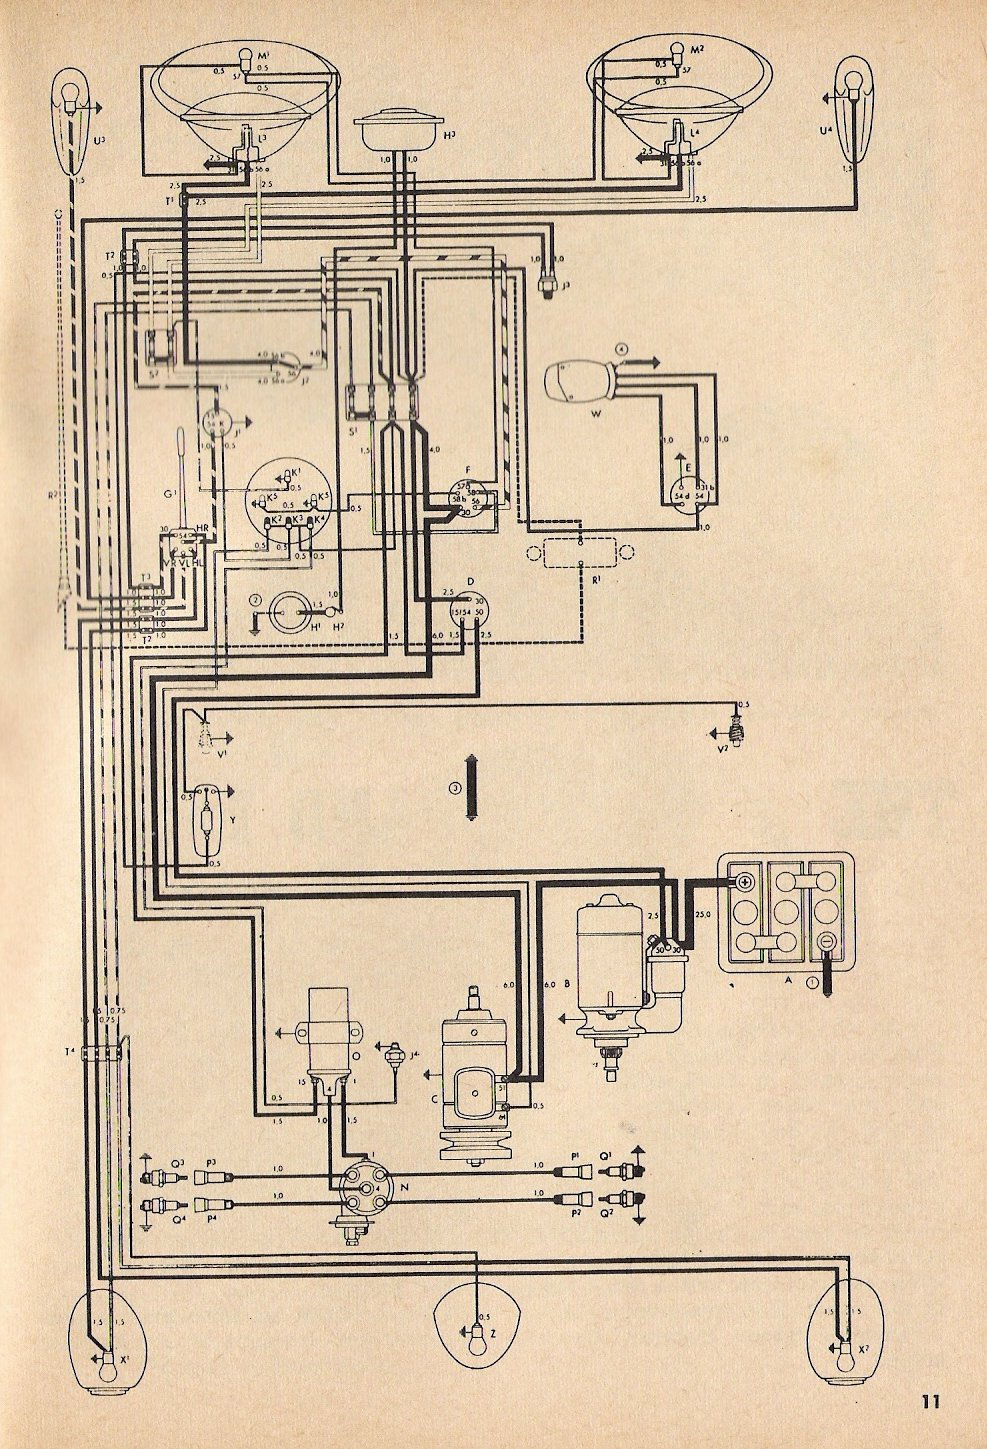 bug_toaug57 thesamba com type 1 wiring diagrams vw generator to alternator conversion wiring diagram at mifinder.co